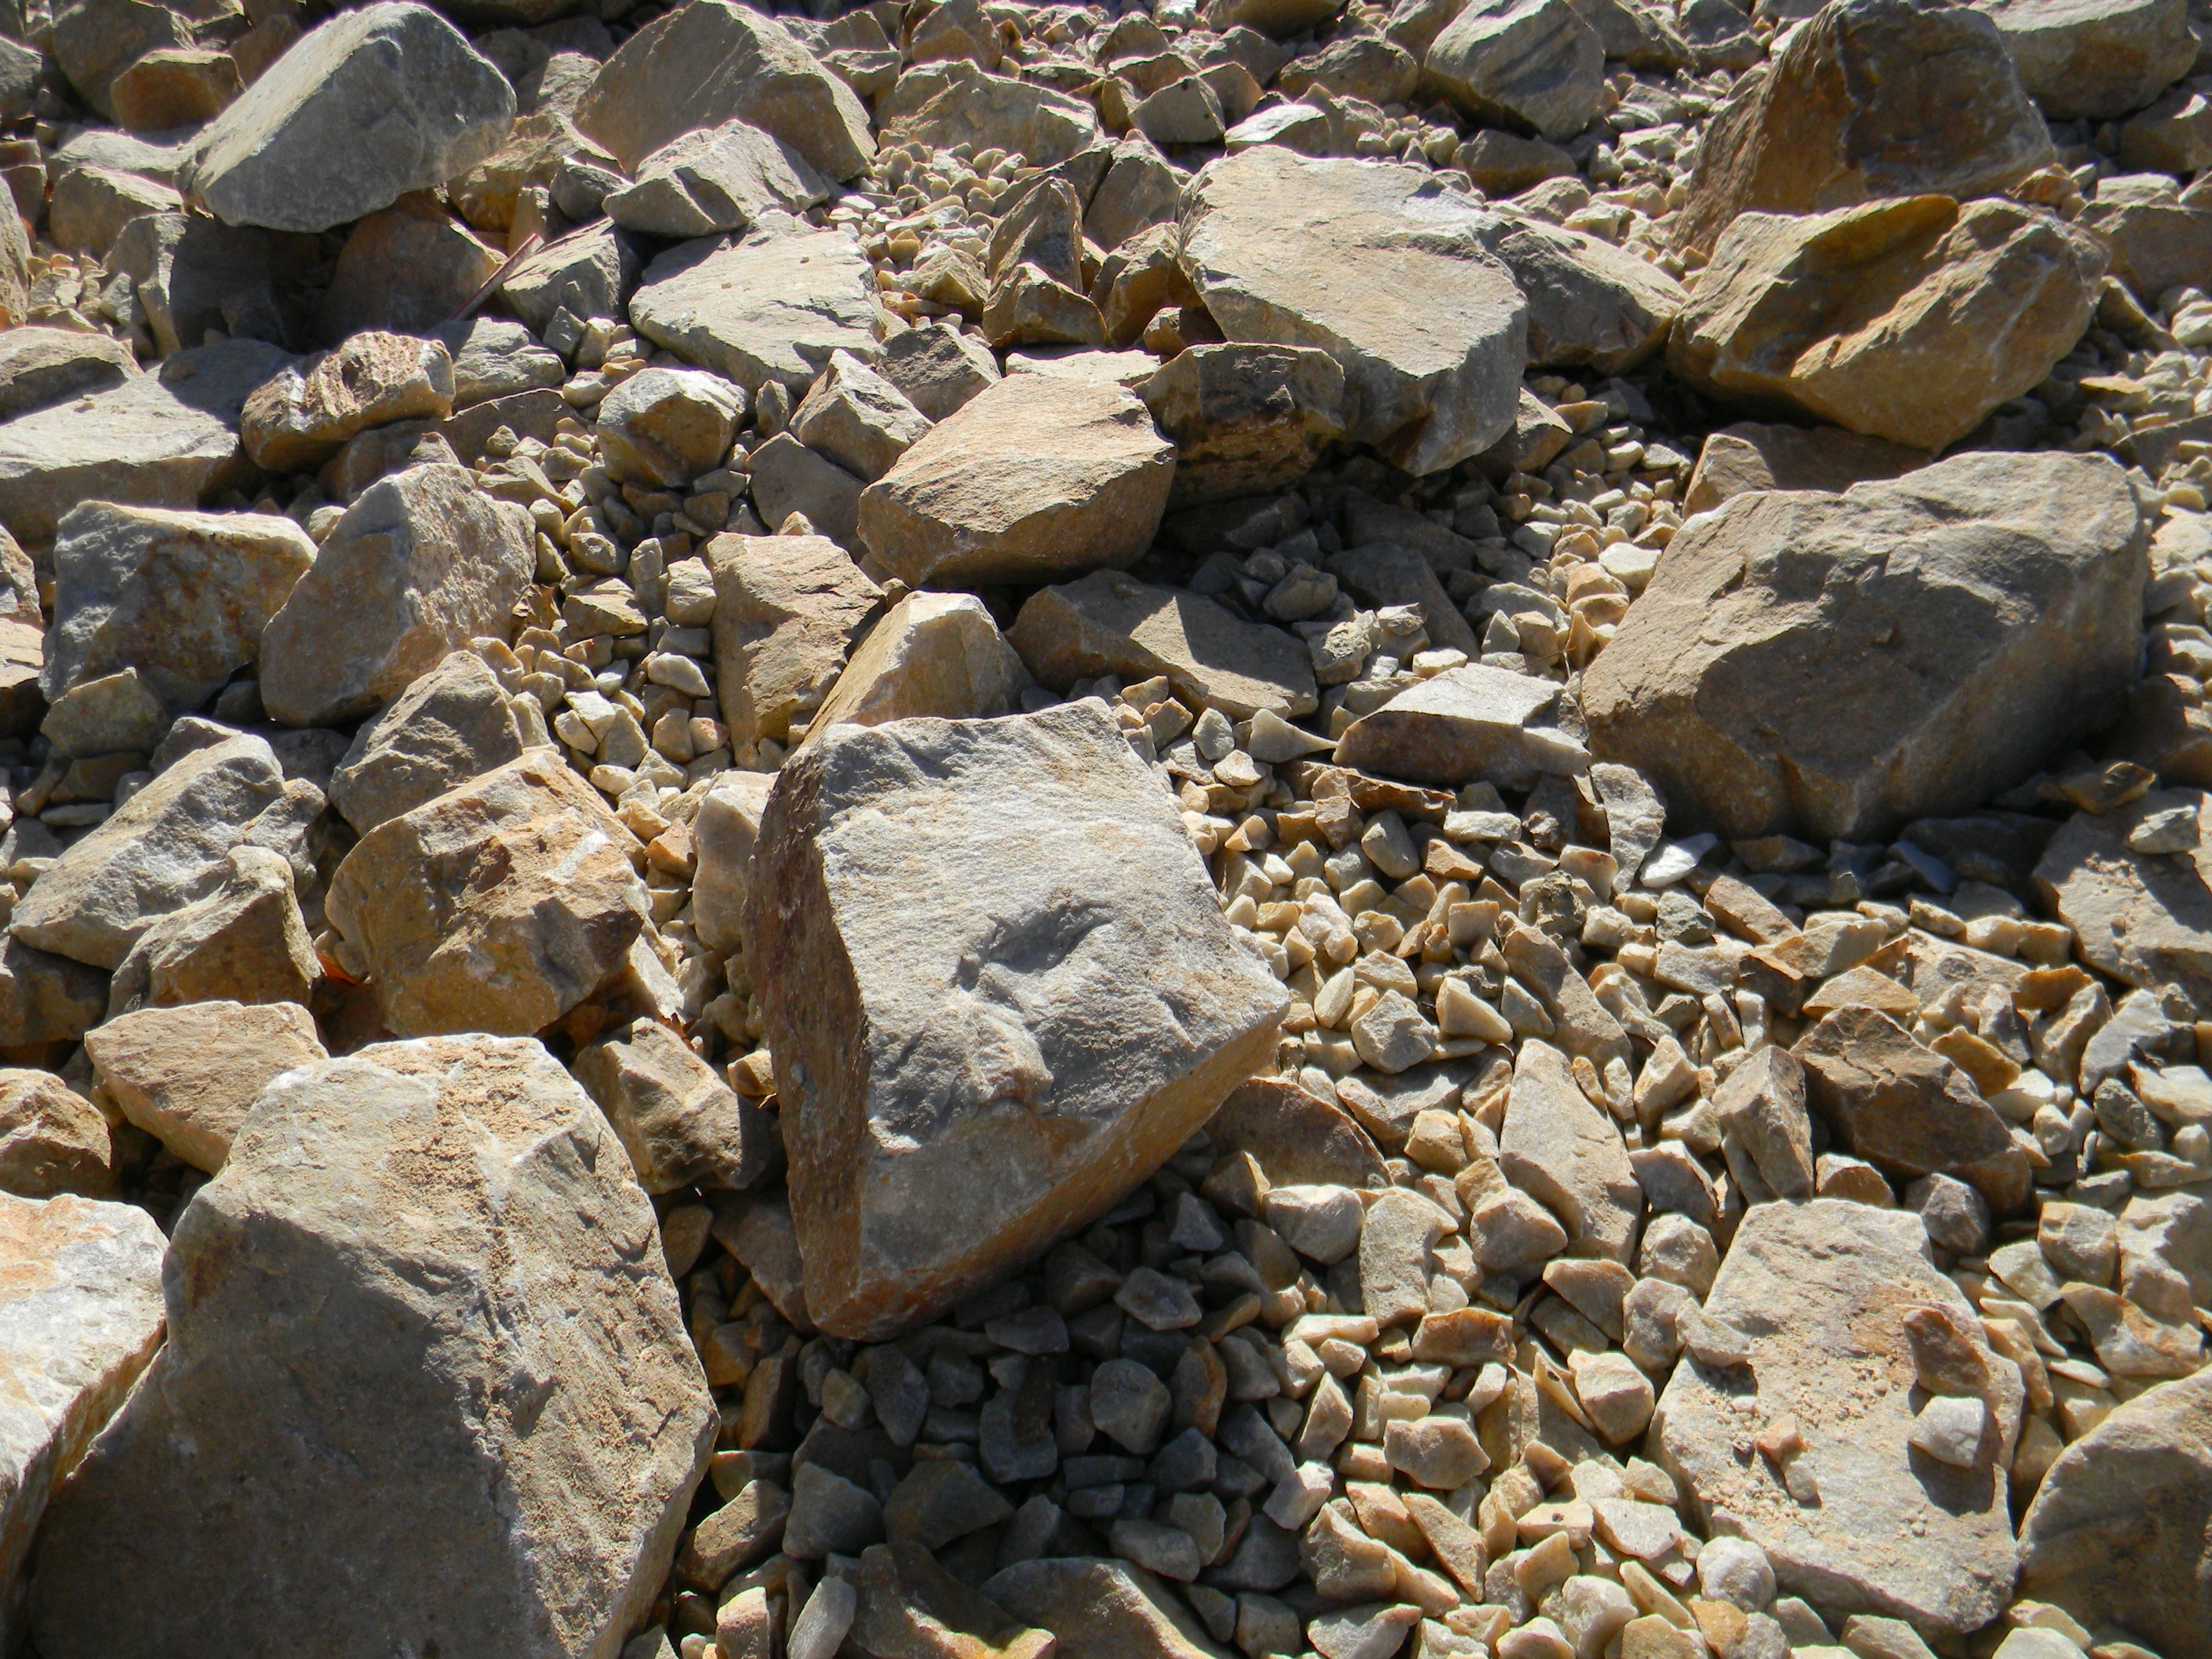 Decorative Quartz Rocks These Photos Are From A Landscape Renovation Where The Lawns Were